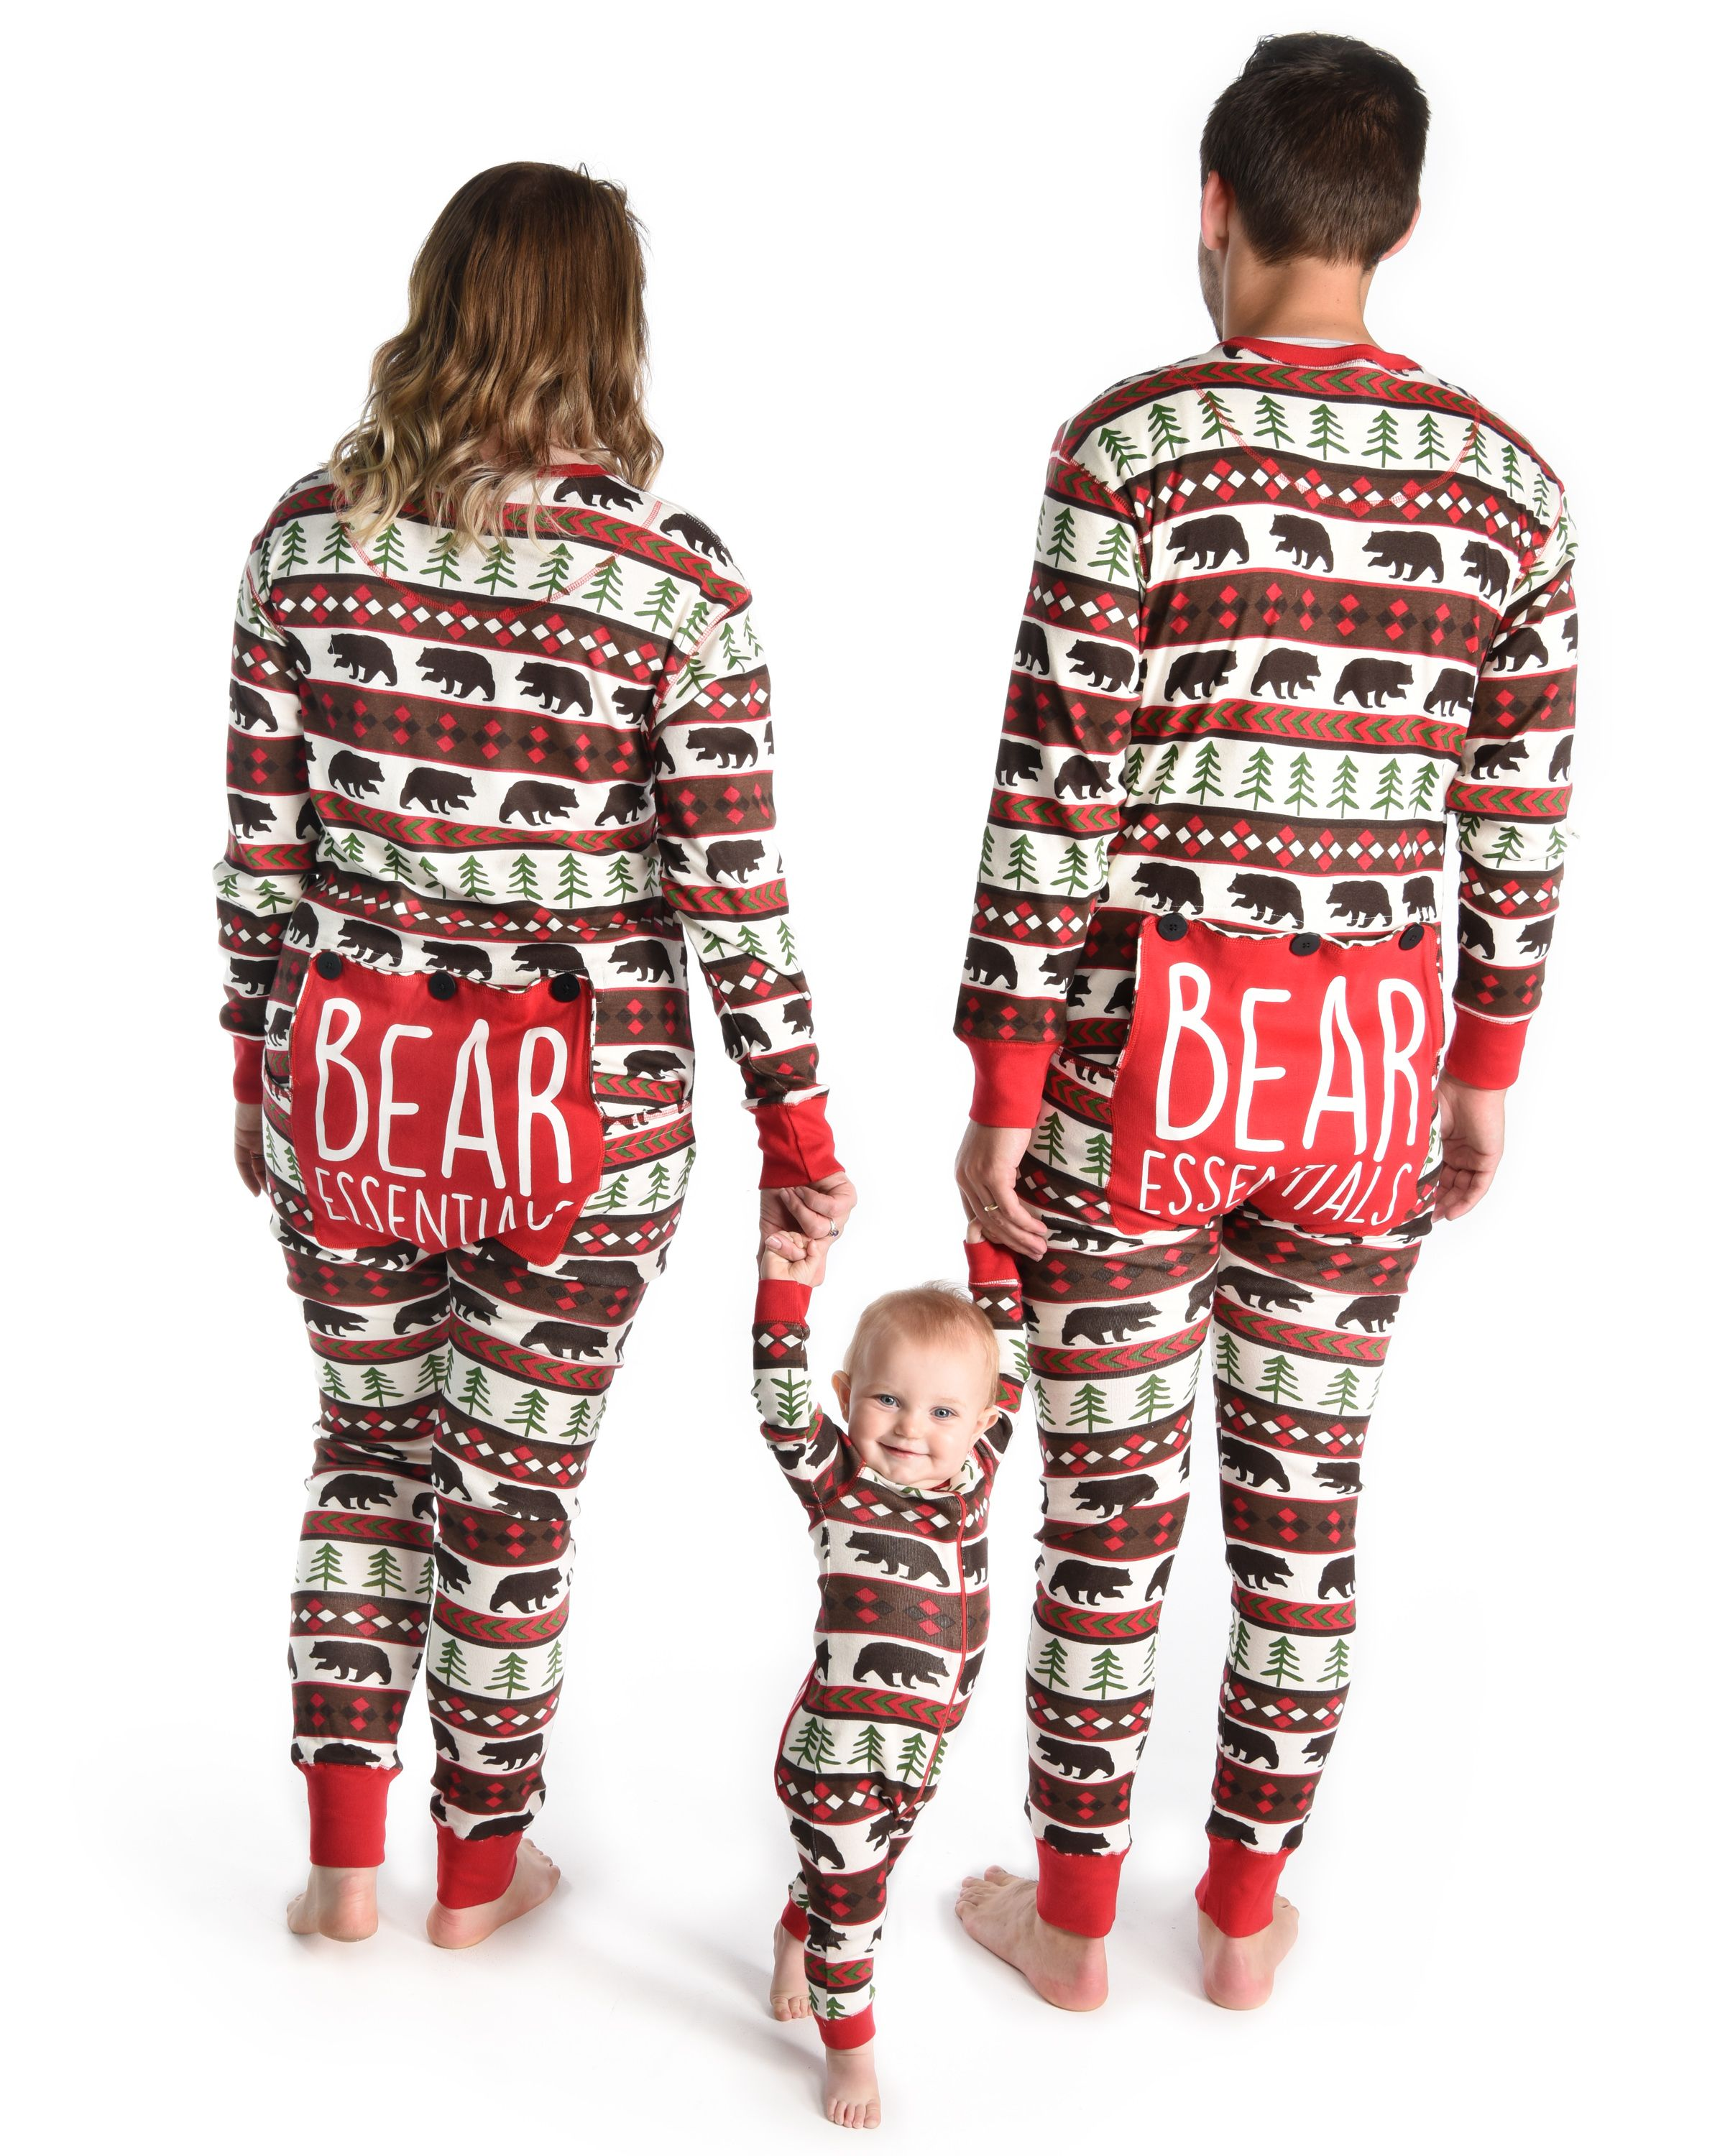 41542e7c2e Fun pajama sets for the whole family! Get together with coordinating pjs  for every men